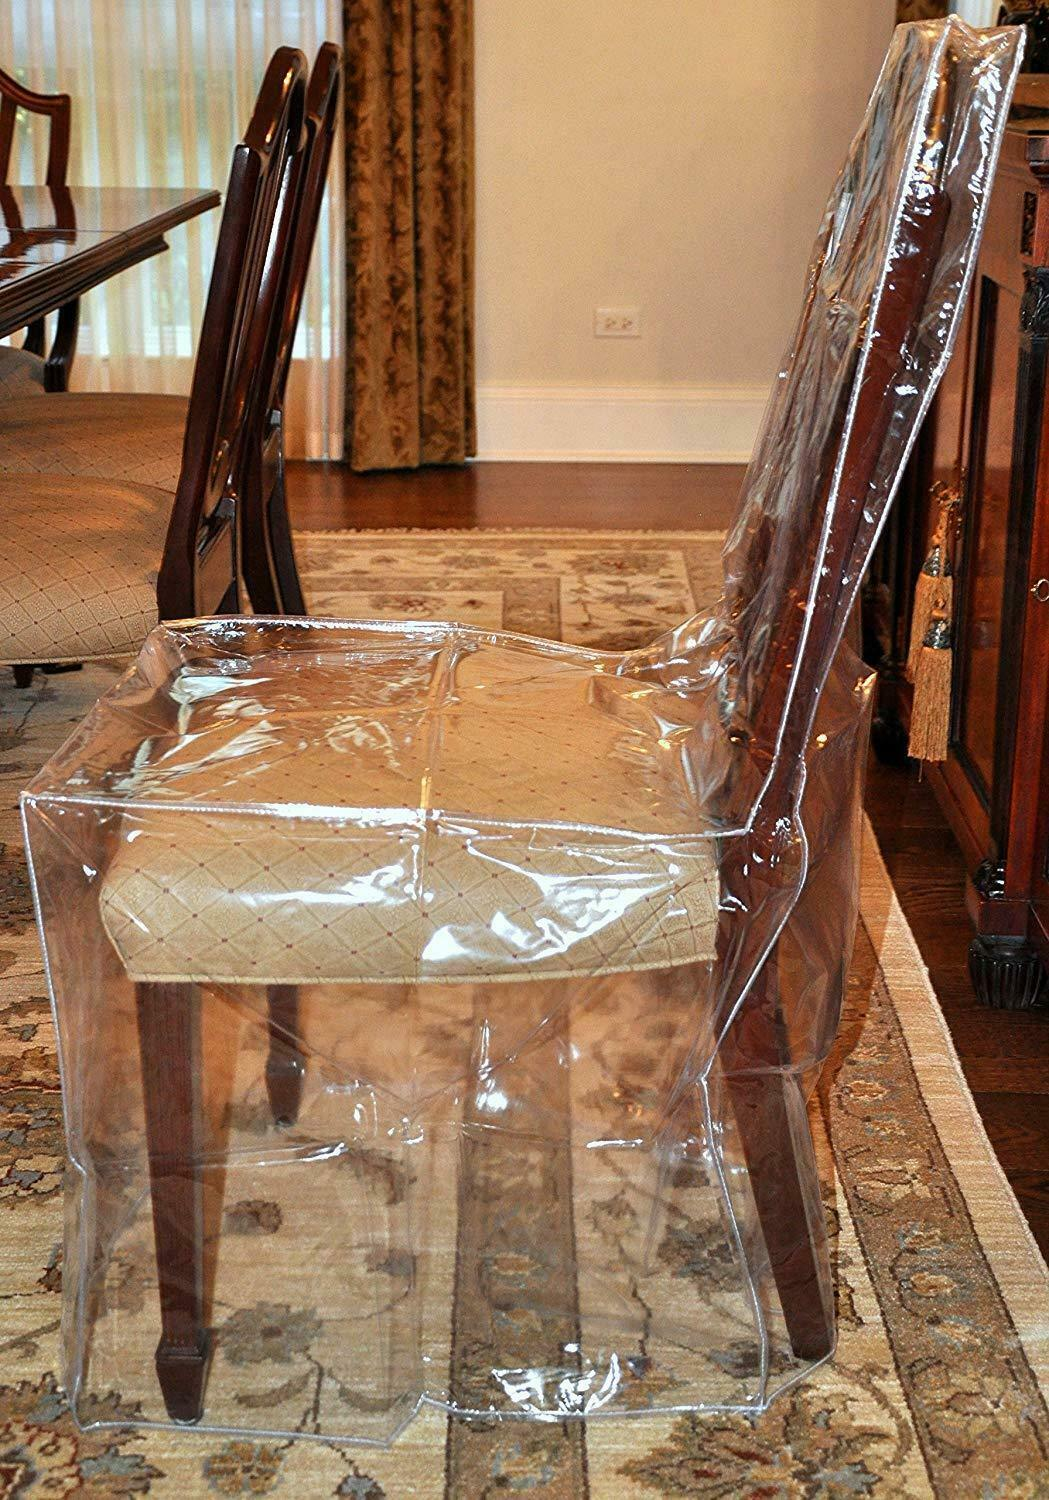 Laminet Dining Room Chair Protector From Kids Pets Glass Clear Vinyl 22x20x41 For Sale Online Ebay